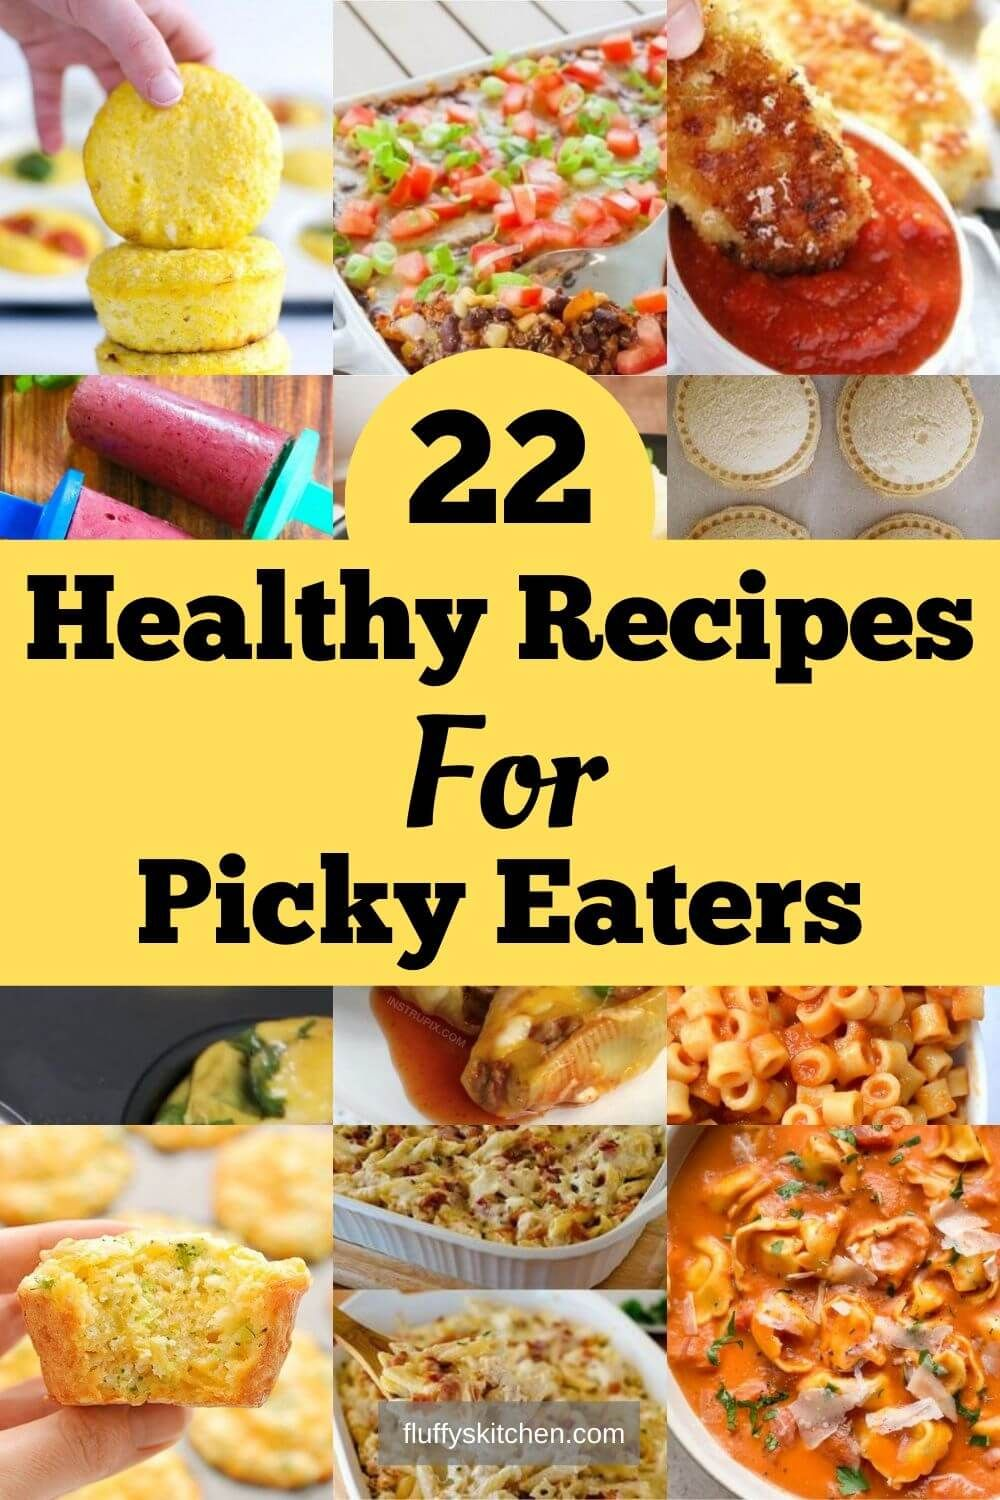 When your kids are refusing to eat healthy food sometimes you have to address the picky eaters and get creative Heres 22 healthy recipes for picky eaters